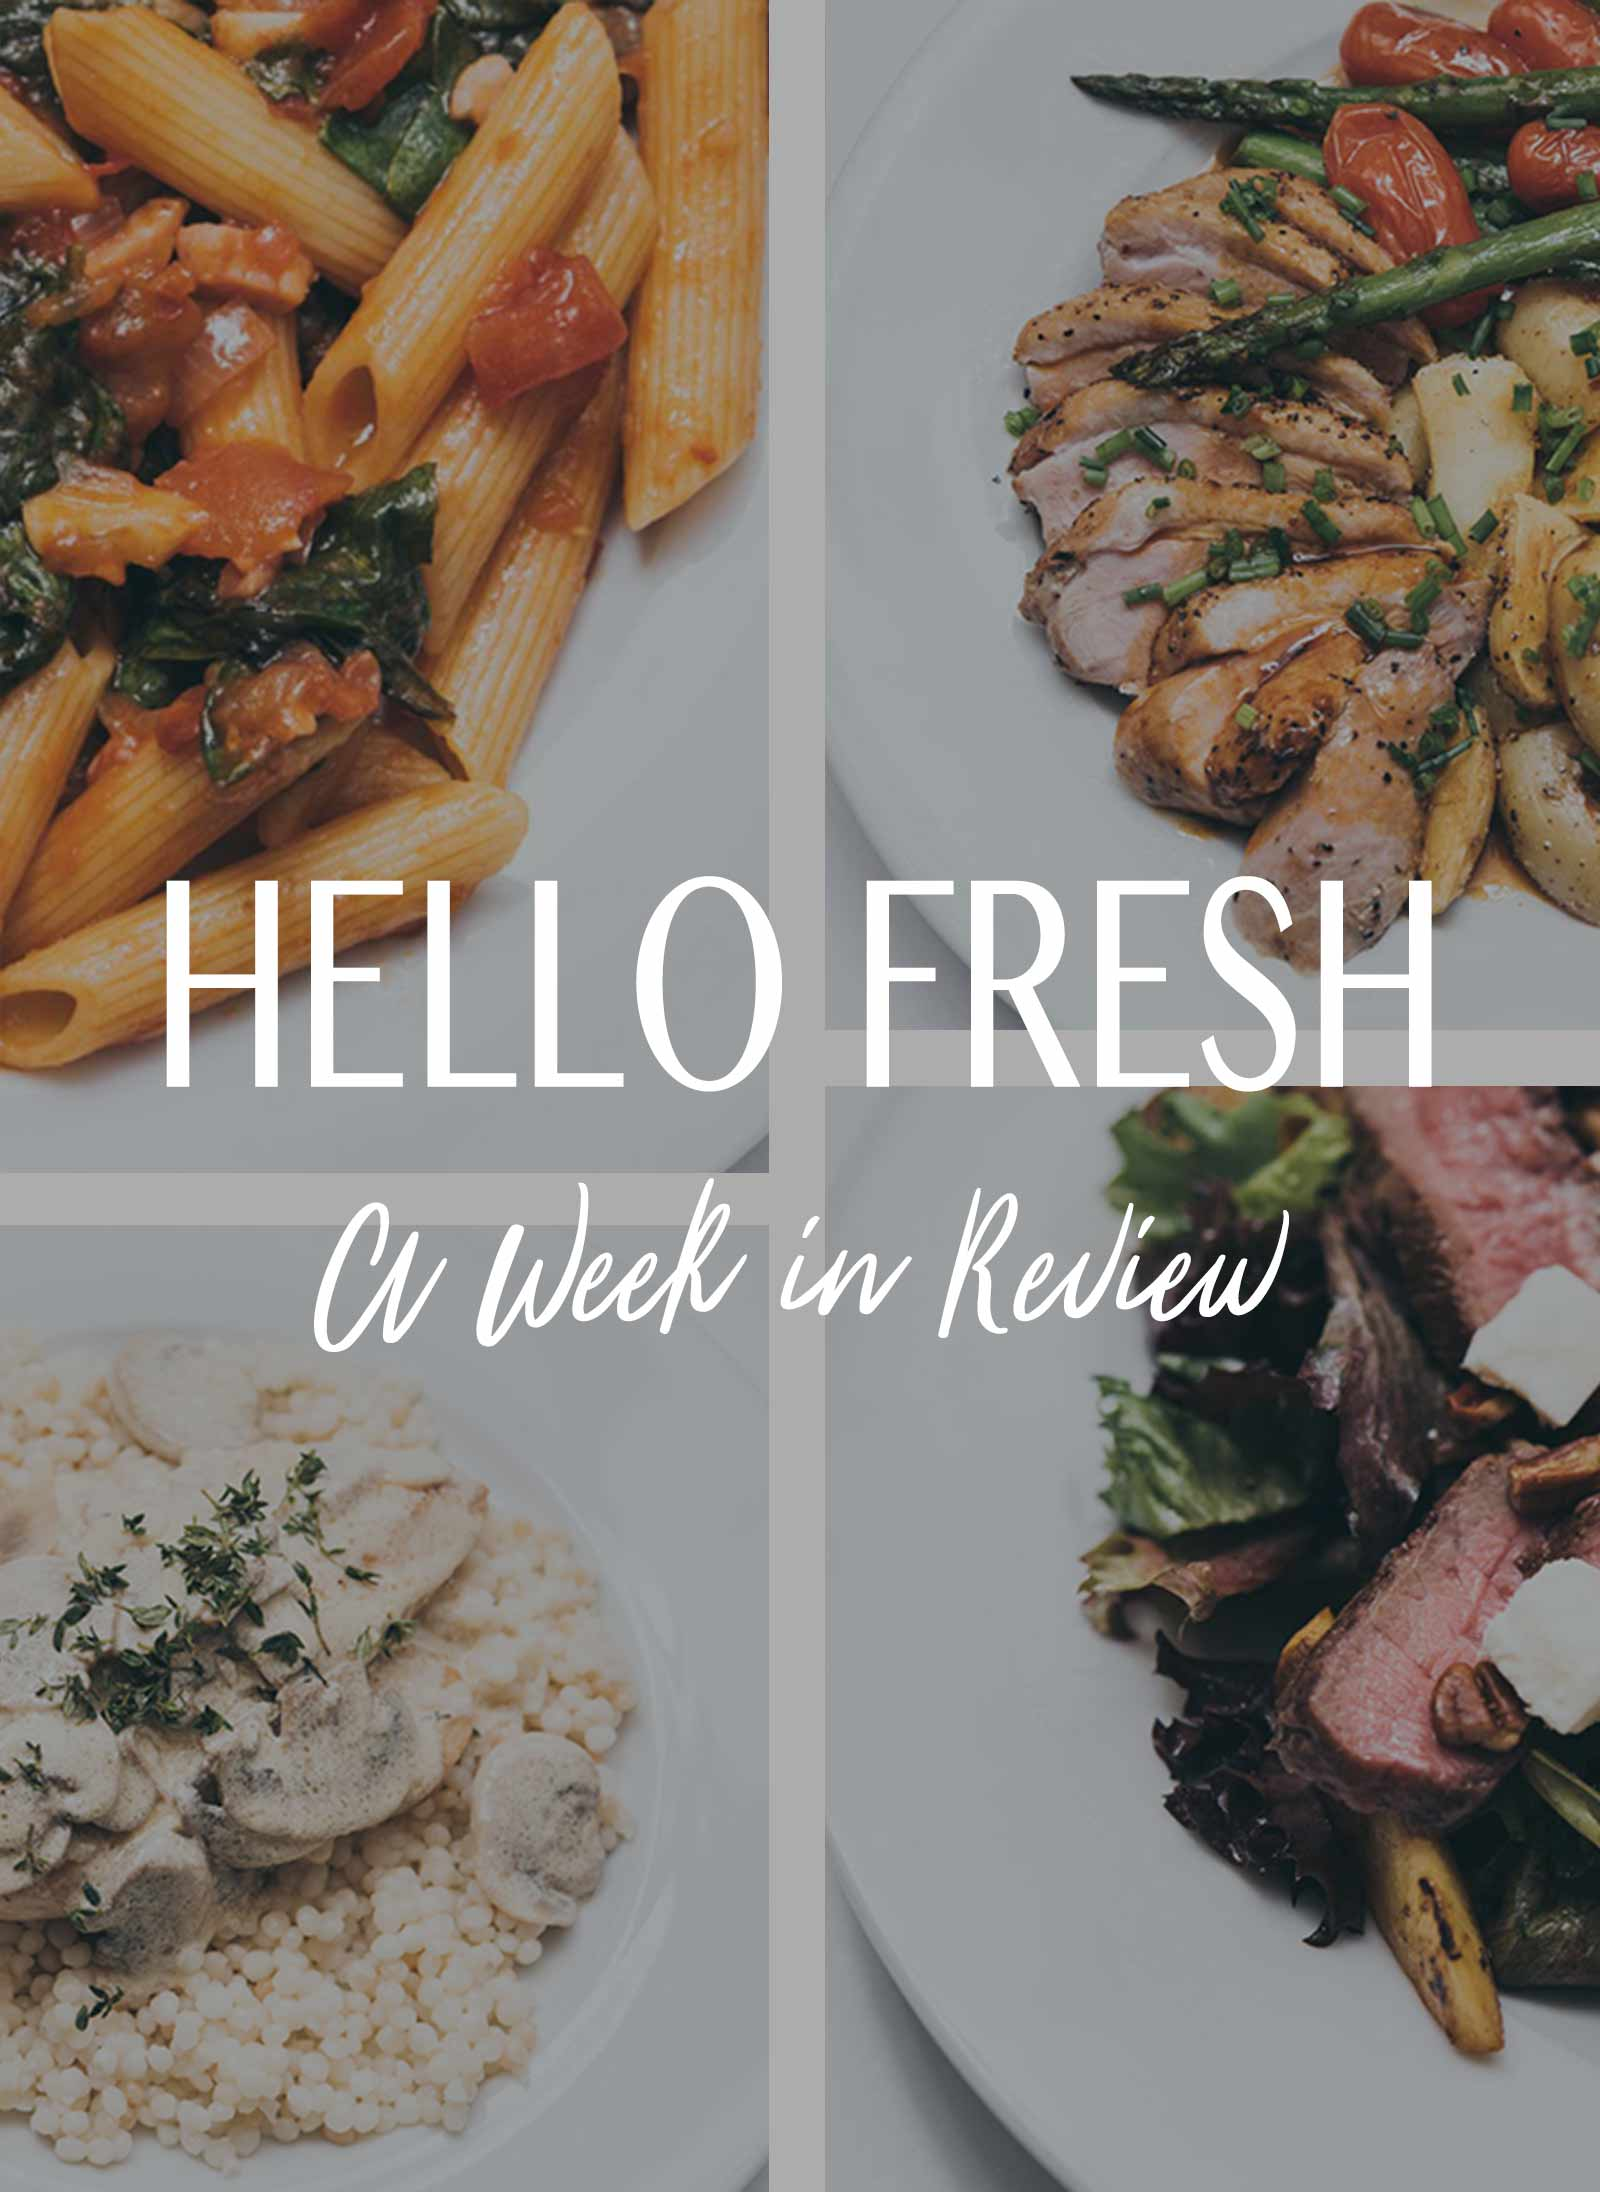 Buy Credit Card  Meal Kit Delivery Service Hellofresh